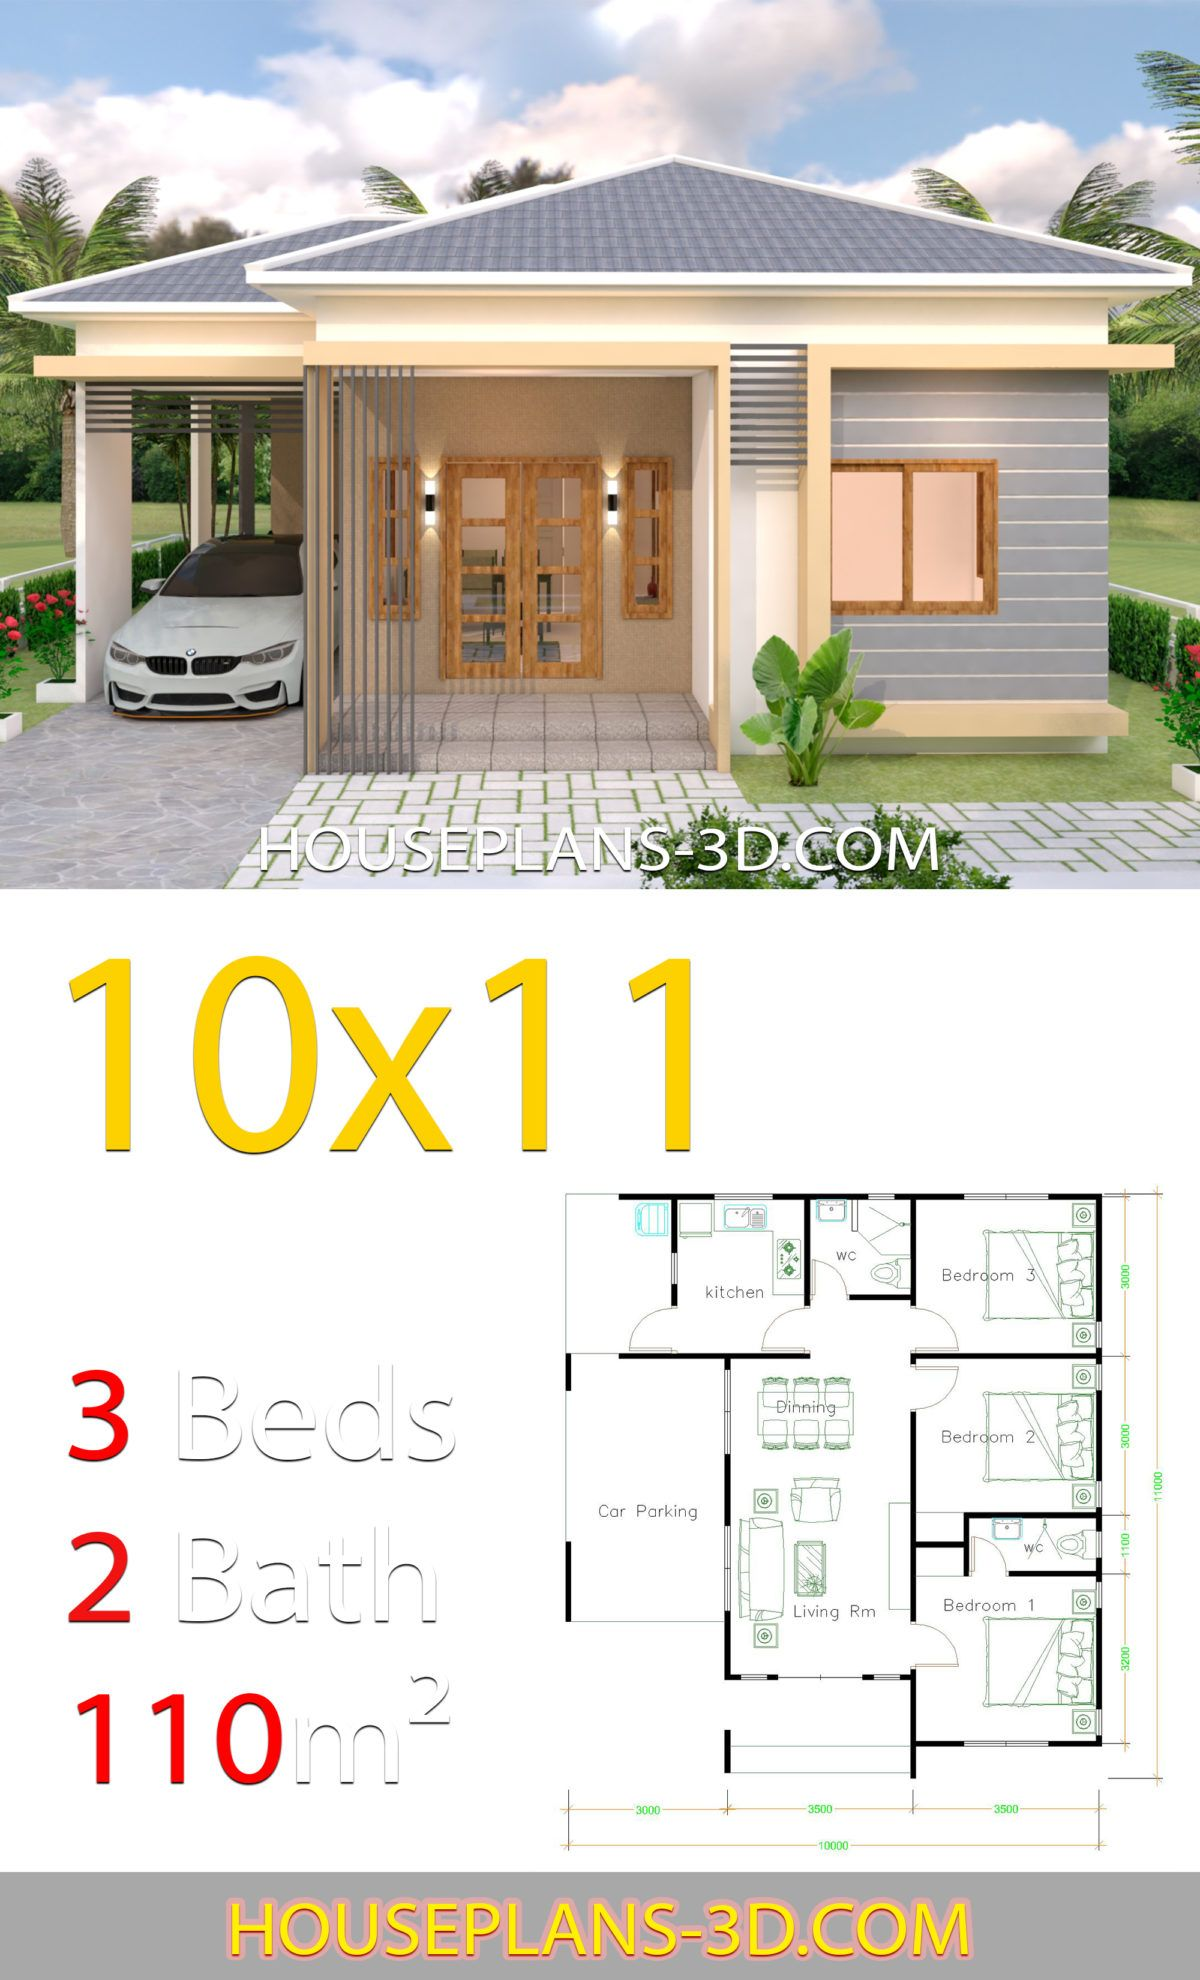 House Design 10x11 With 3 Bedrooms Hip Tiles House Plans 3d In 2020 Small House Plans Tiny House Plans 2 Bedroom House Plans